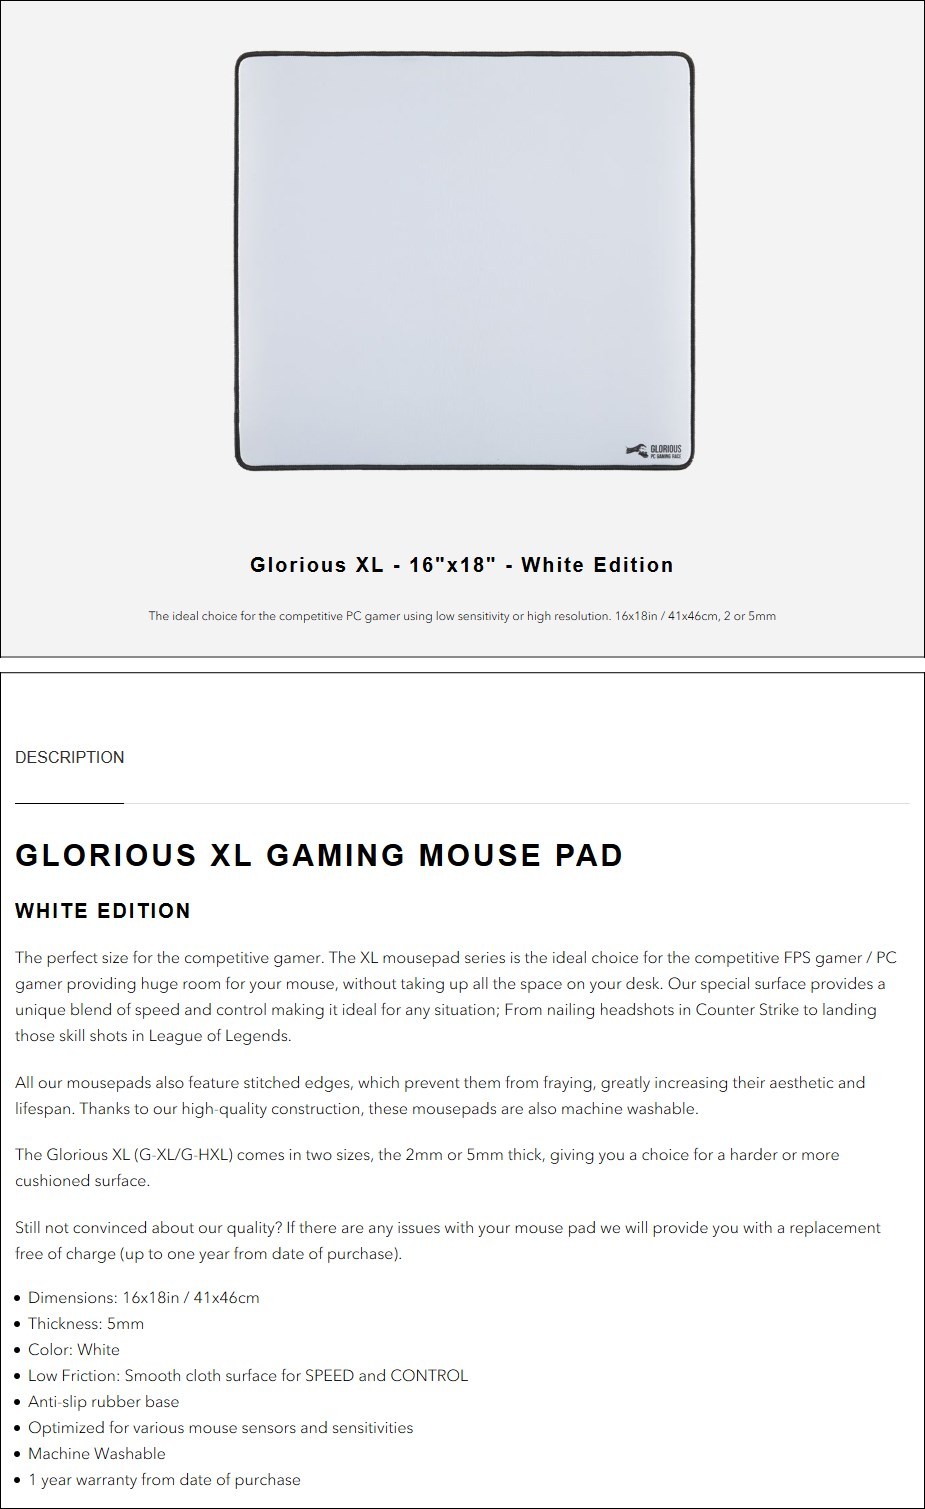 Glorious XL Heavy Gaming Mouse Mat - White - Overview 1